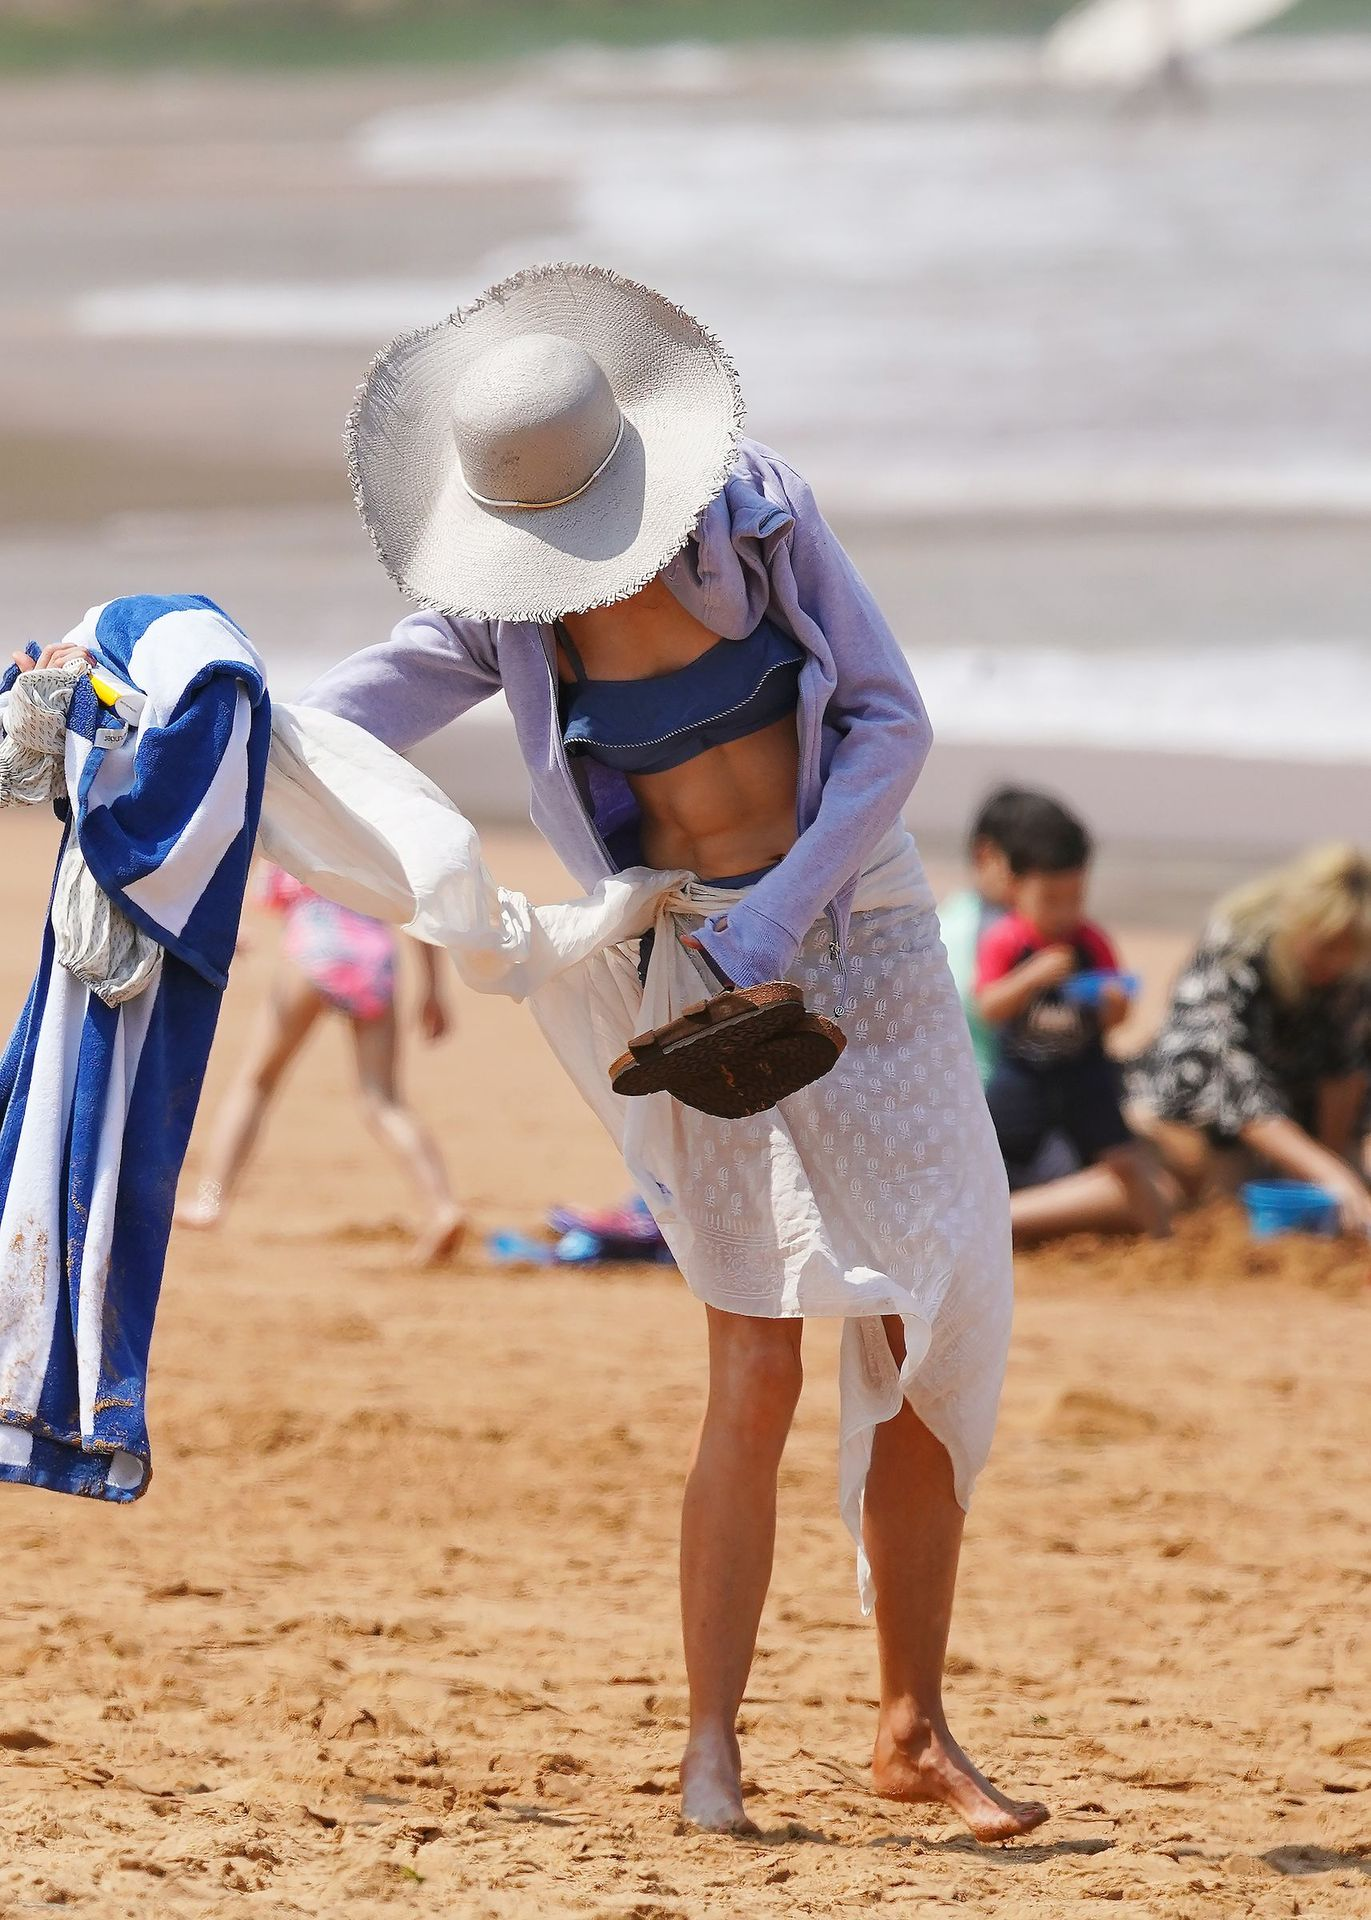 Nicole Kidman Hits The Beach While In Sydney With Her Family 0098